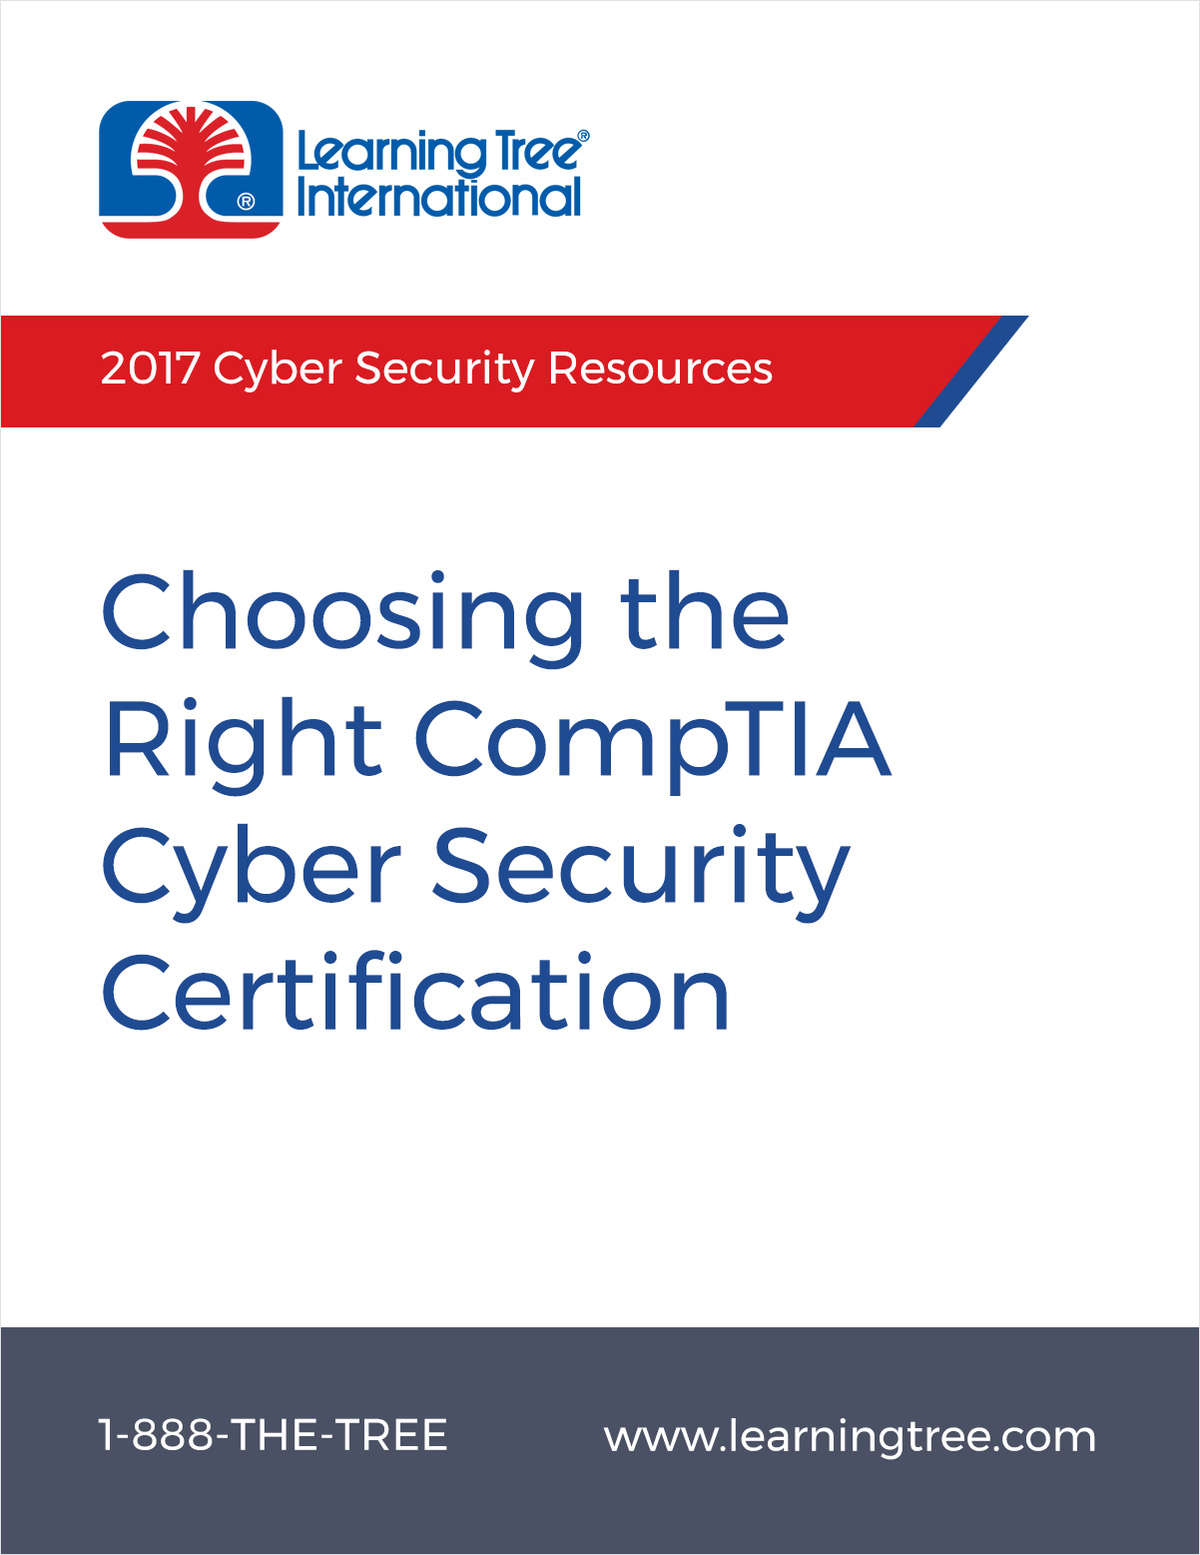 A Career Guide to CompTIA Cybersecurity Certifications